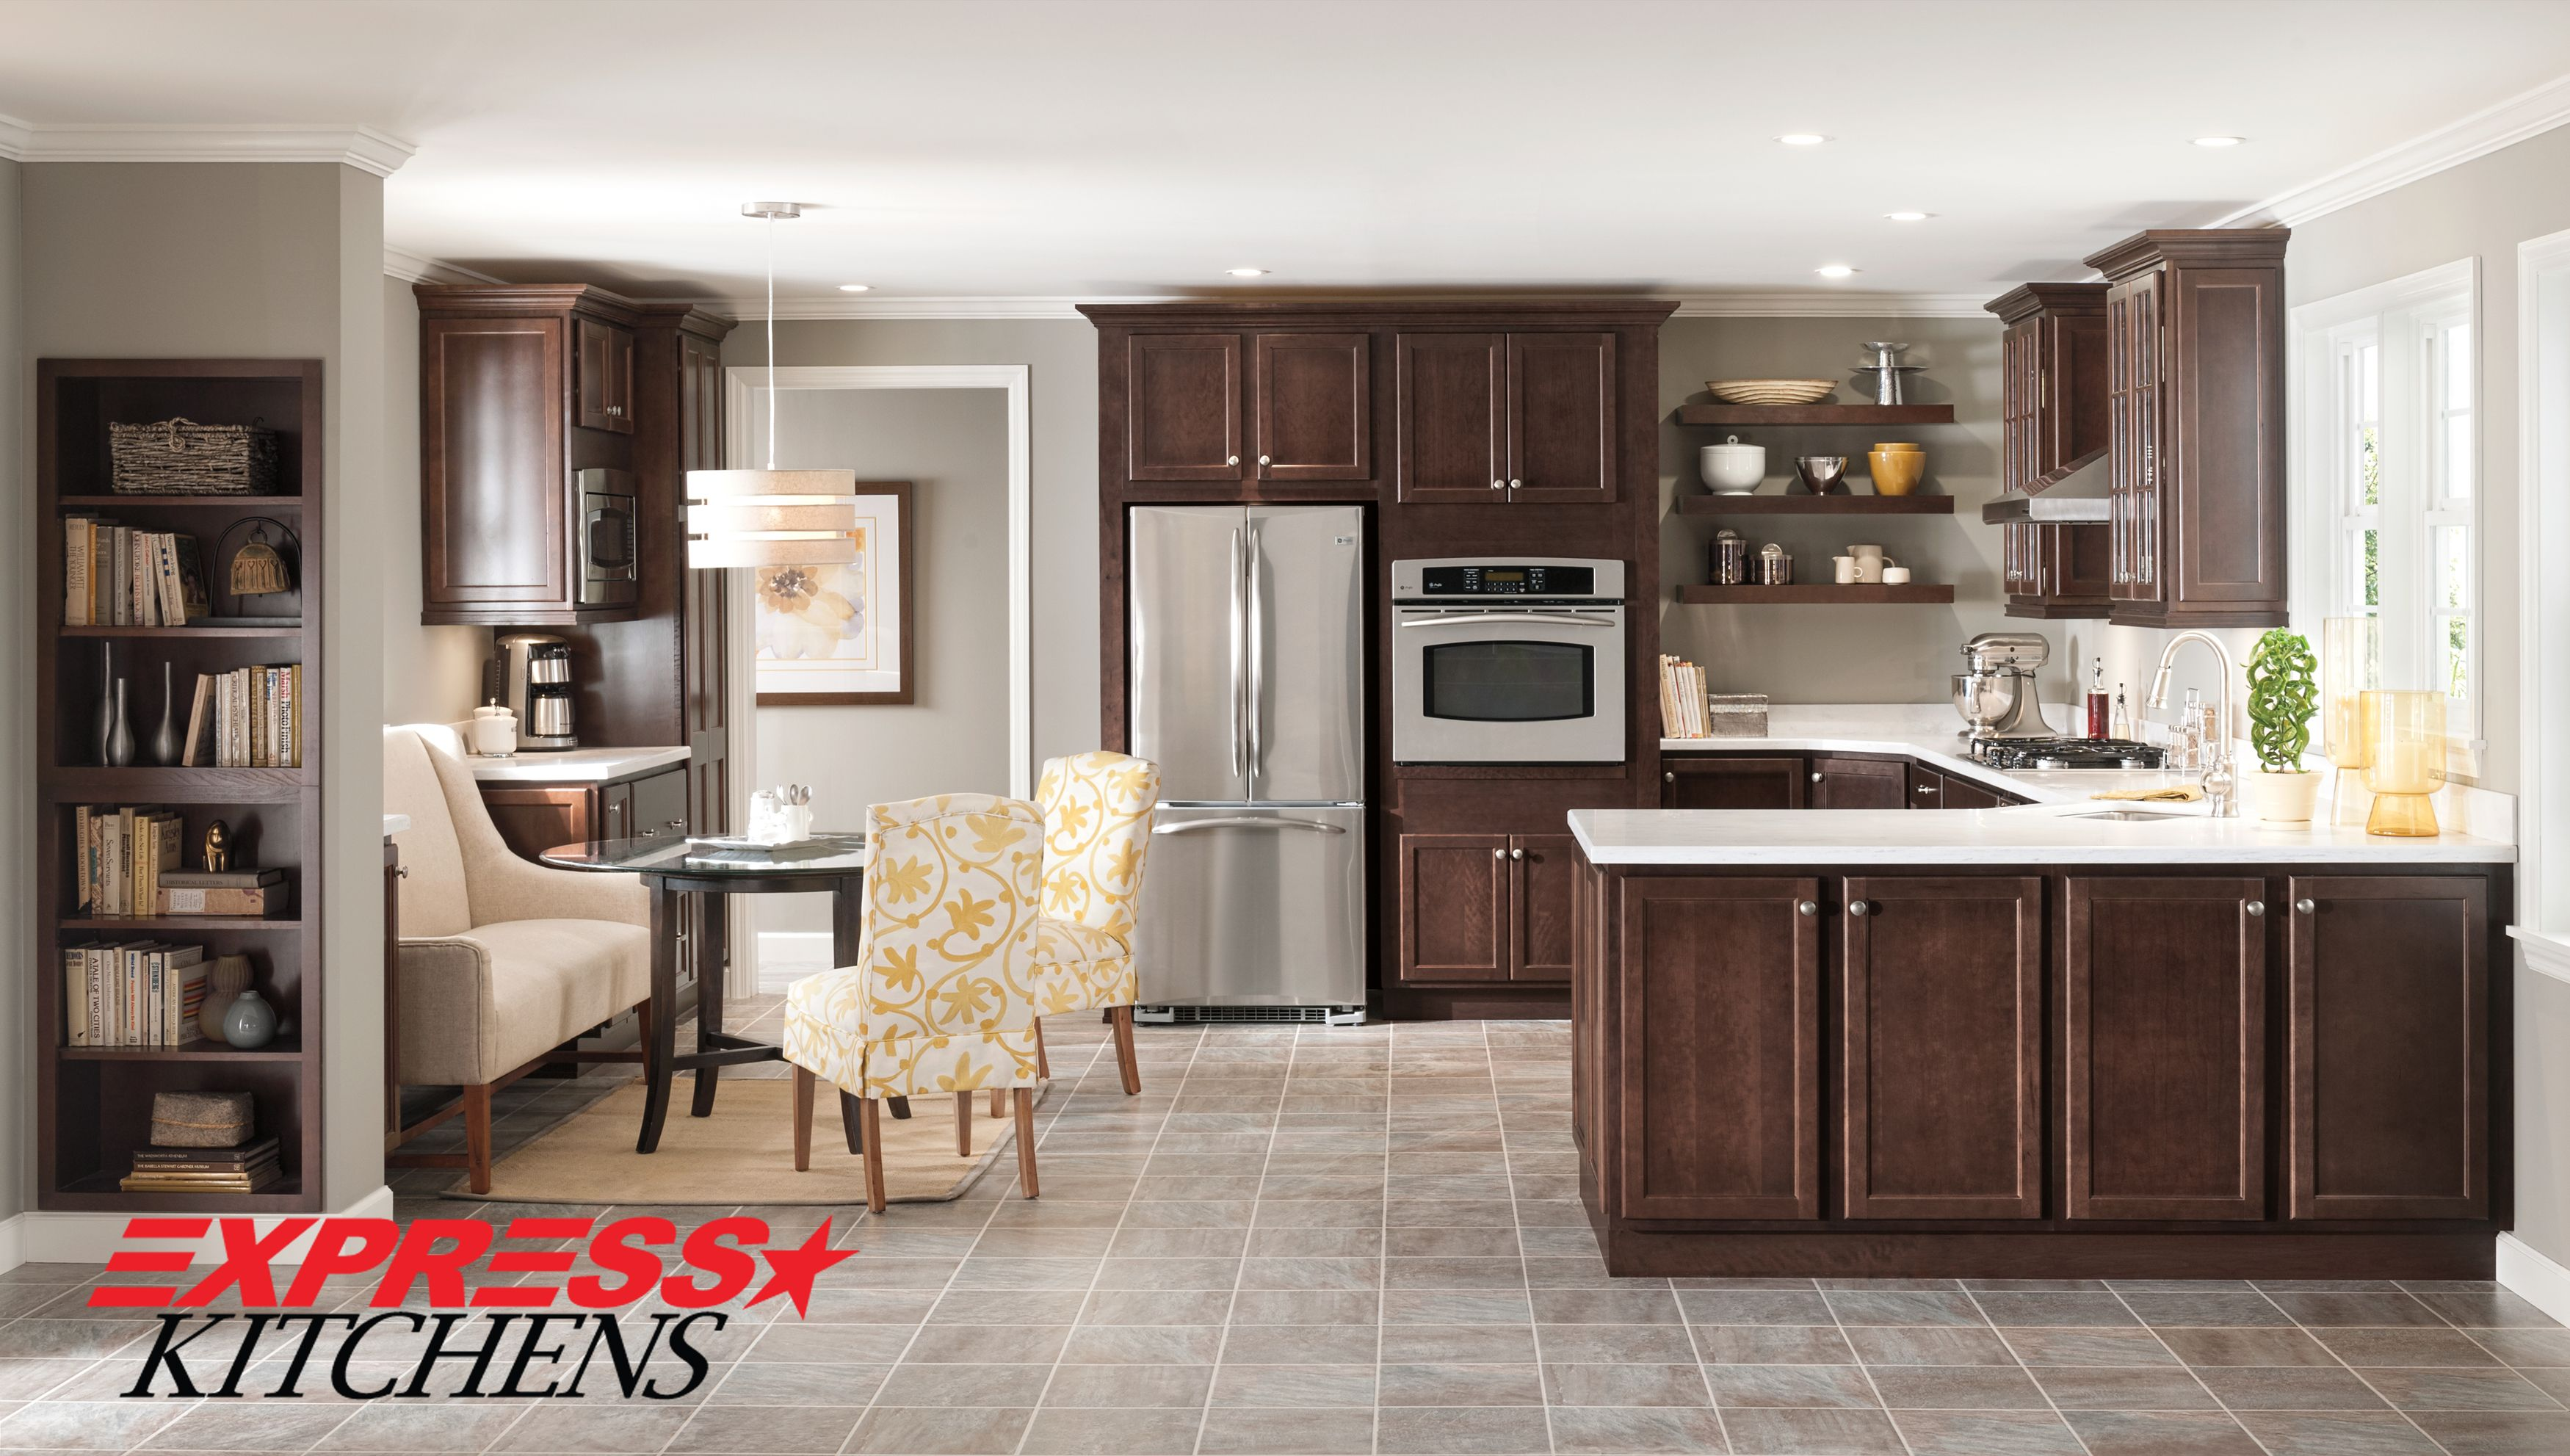 Affordable And Versatile Laurel S Styling Lets You Create An Inviting Traditional Look To Suit Kitchen Tiles Design Dark Wood Kitchen Cabinets Kitchen Design